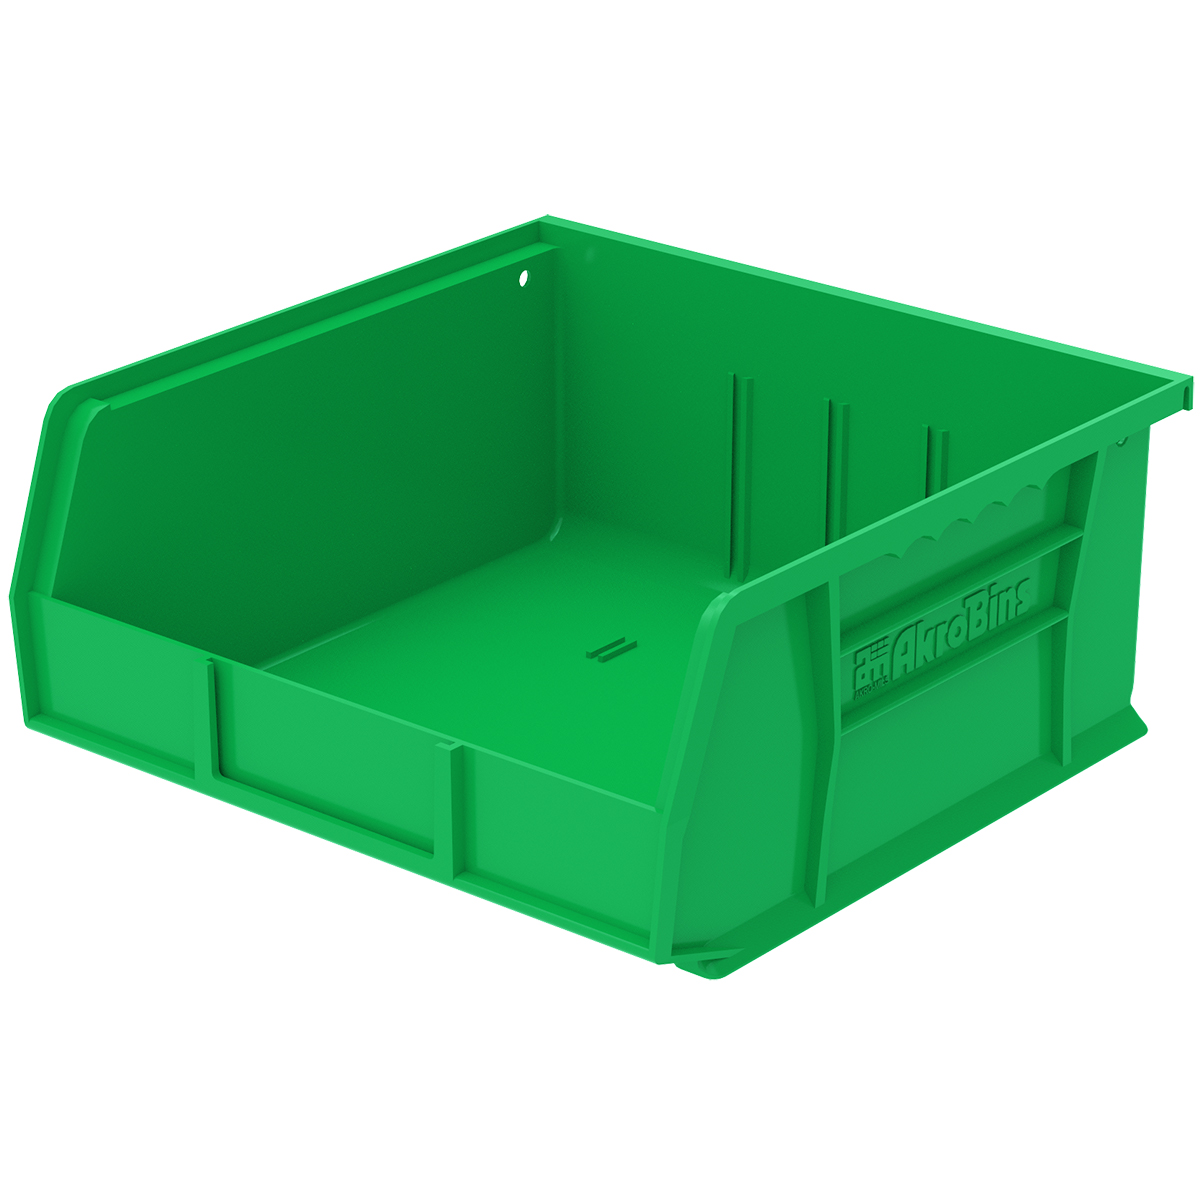 AkroBin 10-7/8 x 11 x 5, Green (30235GREEN).  This item sold in carton quantities of 6.